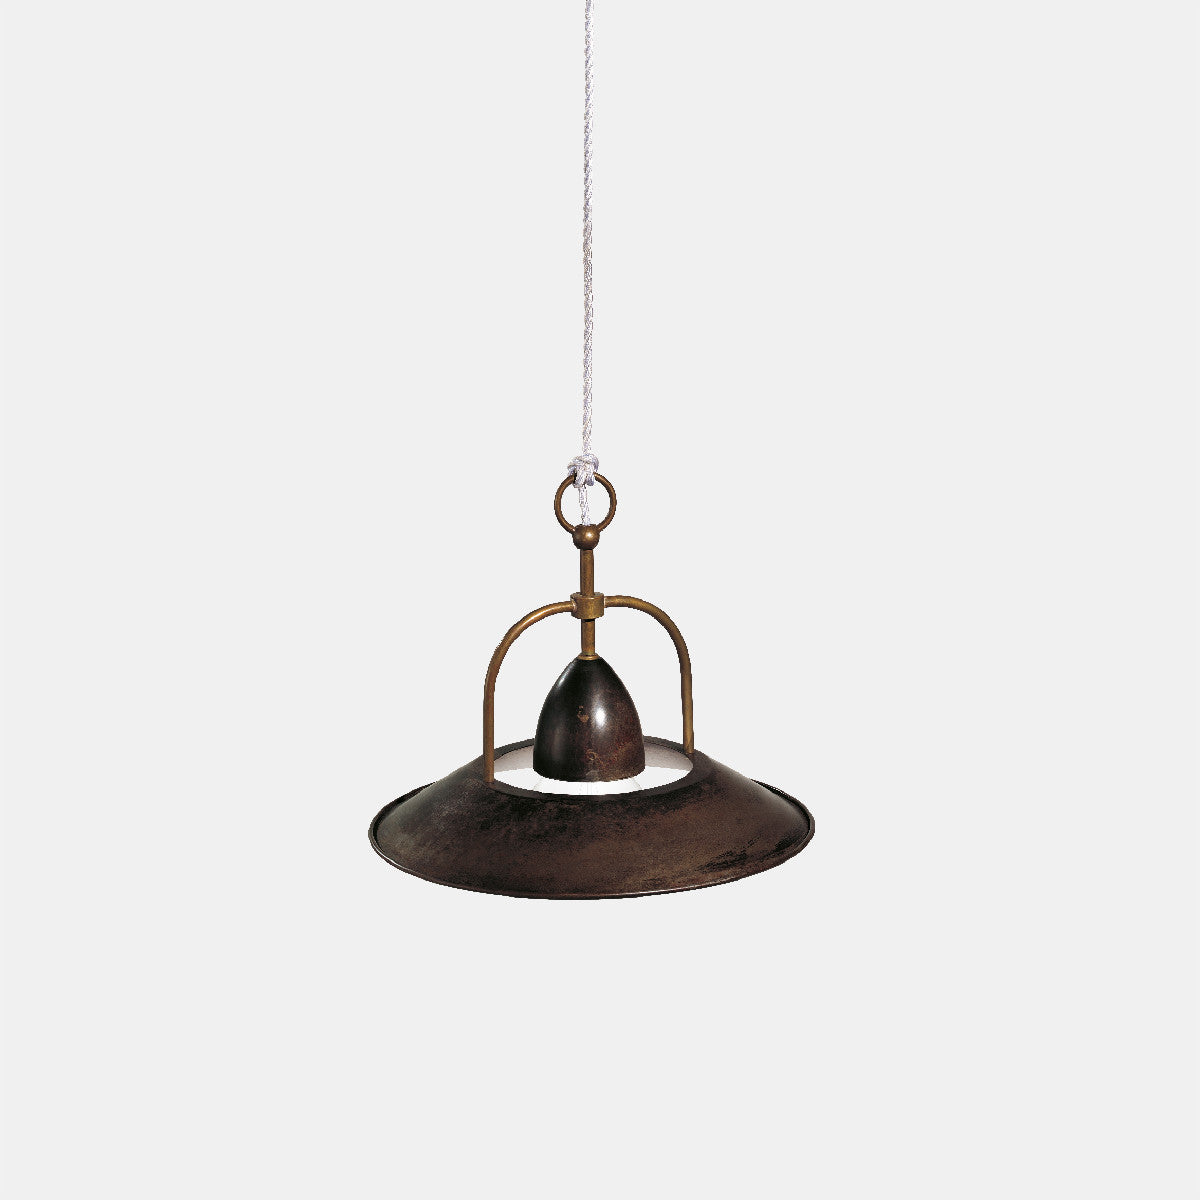 CASCINA Pendant - Iron Shade 204.12.OF - touchGOODS